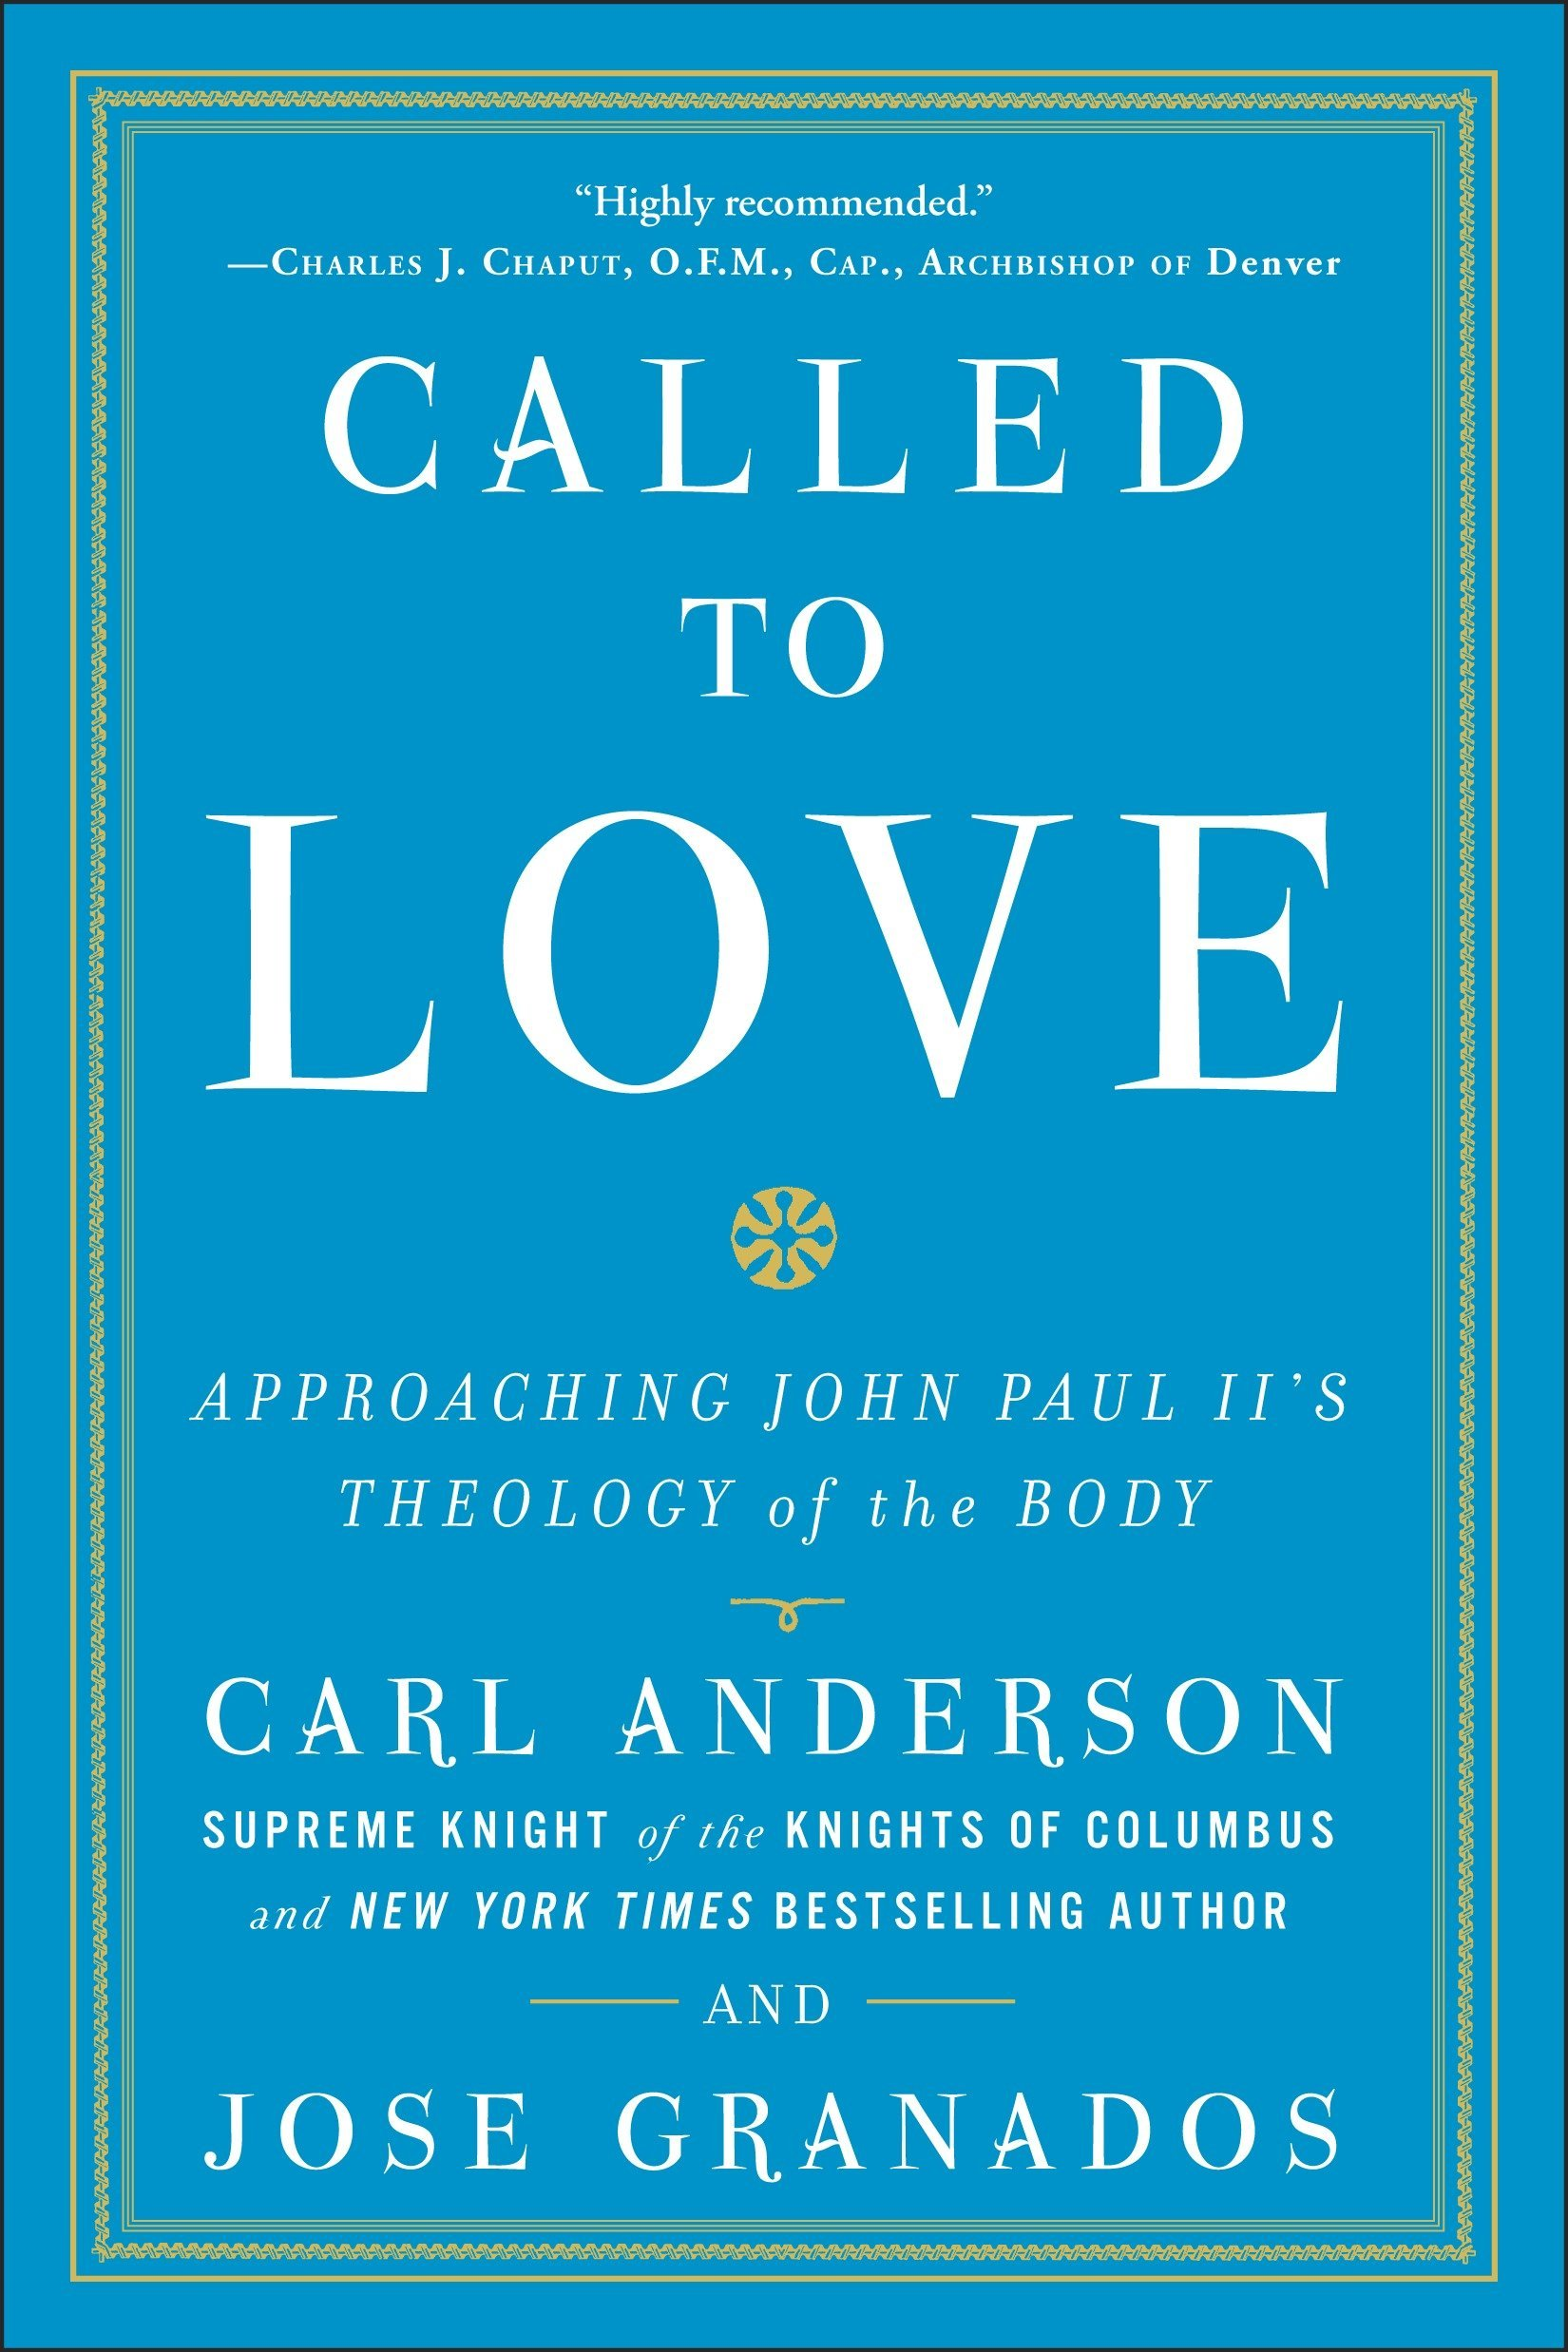 Called to Love: Approaching John Paul II's Theology of the Body pdf